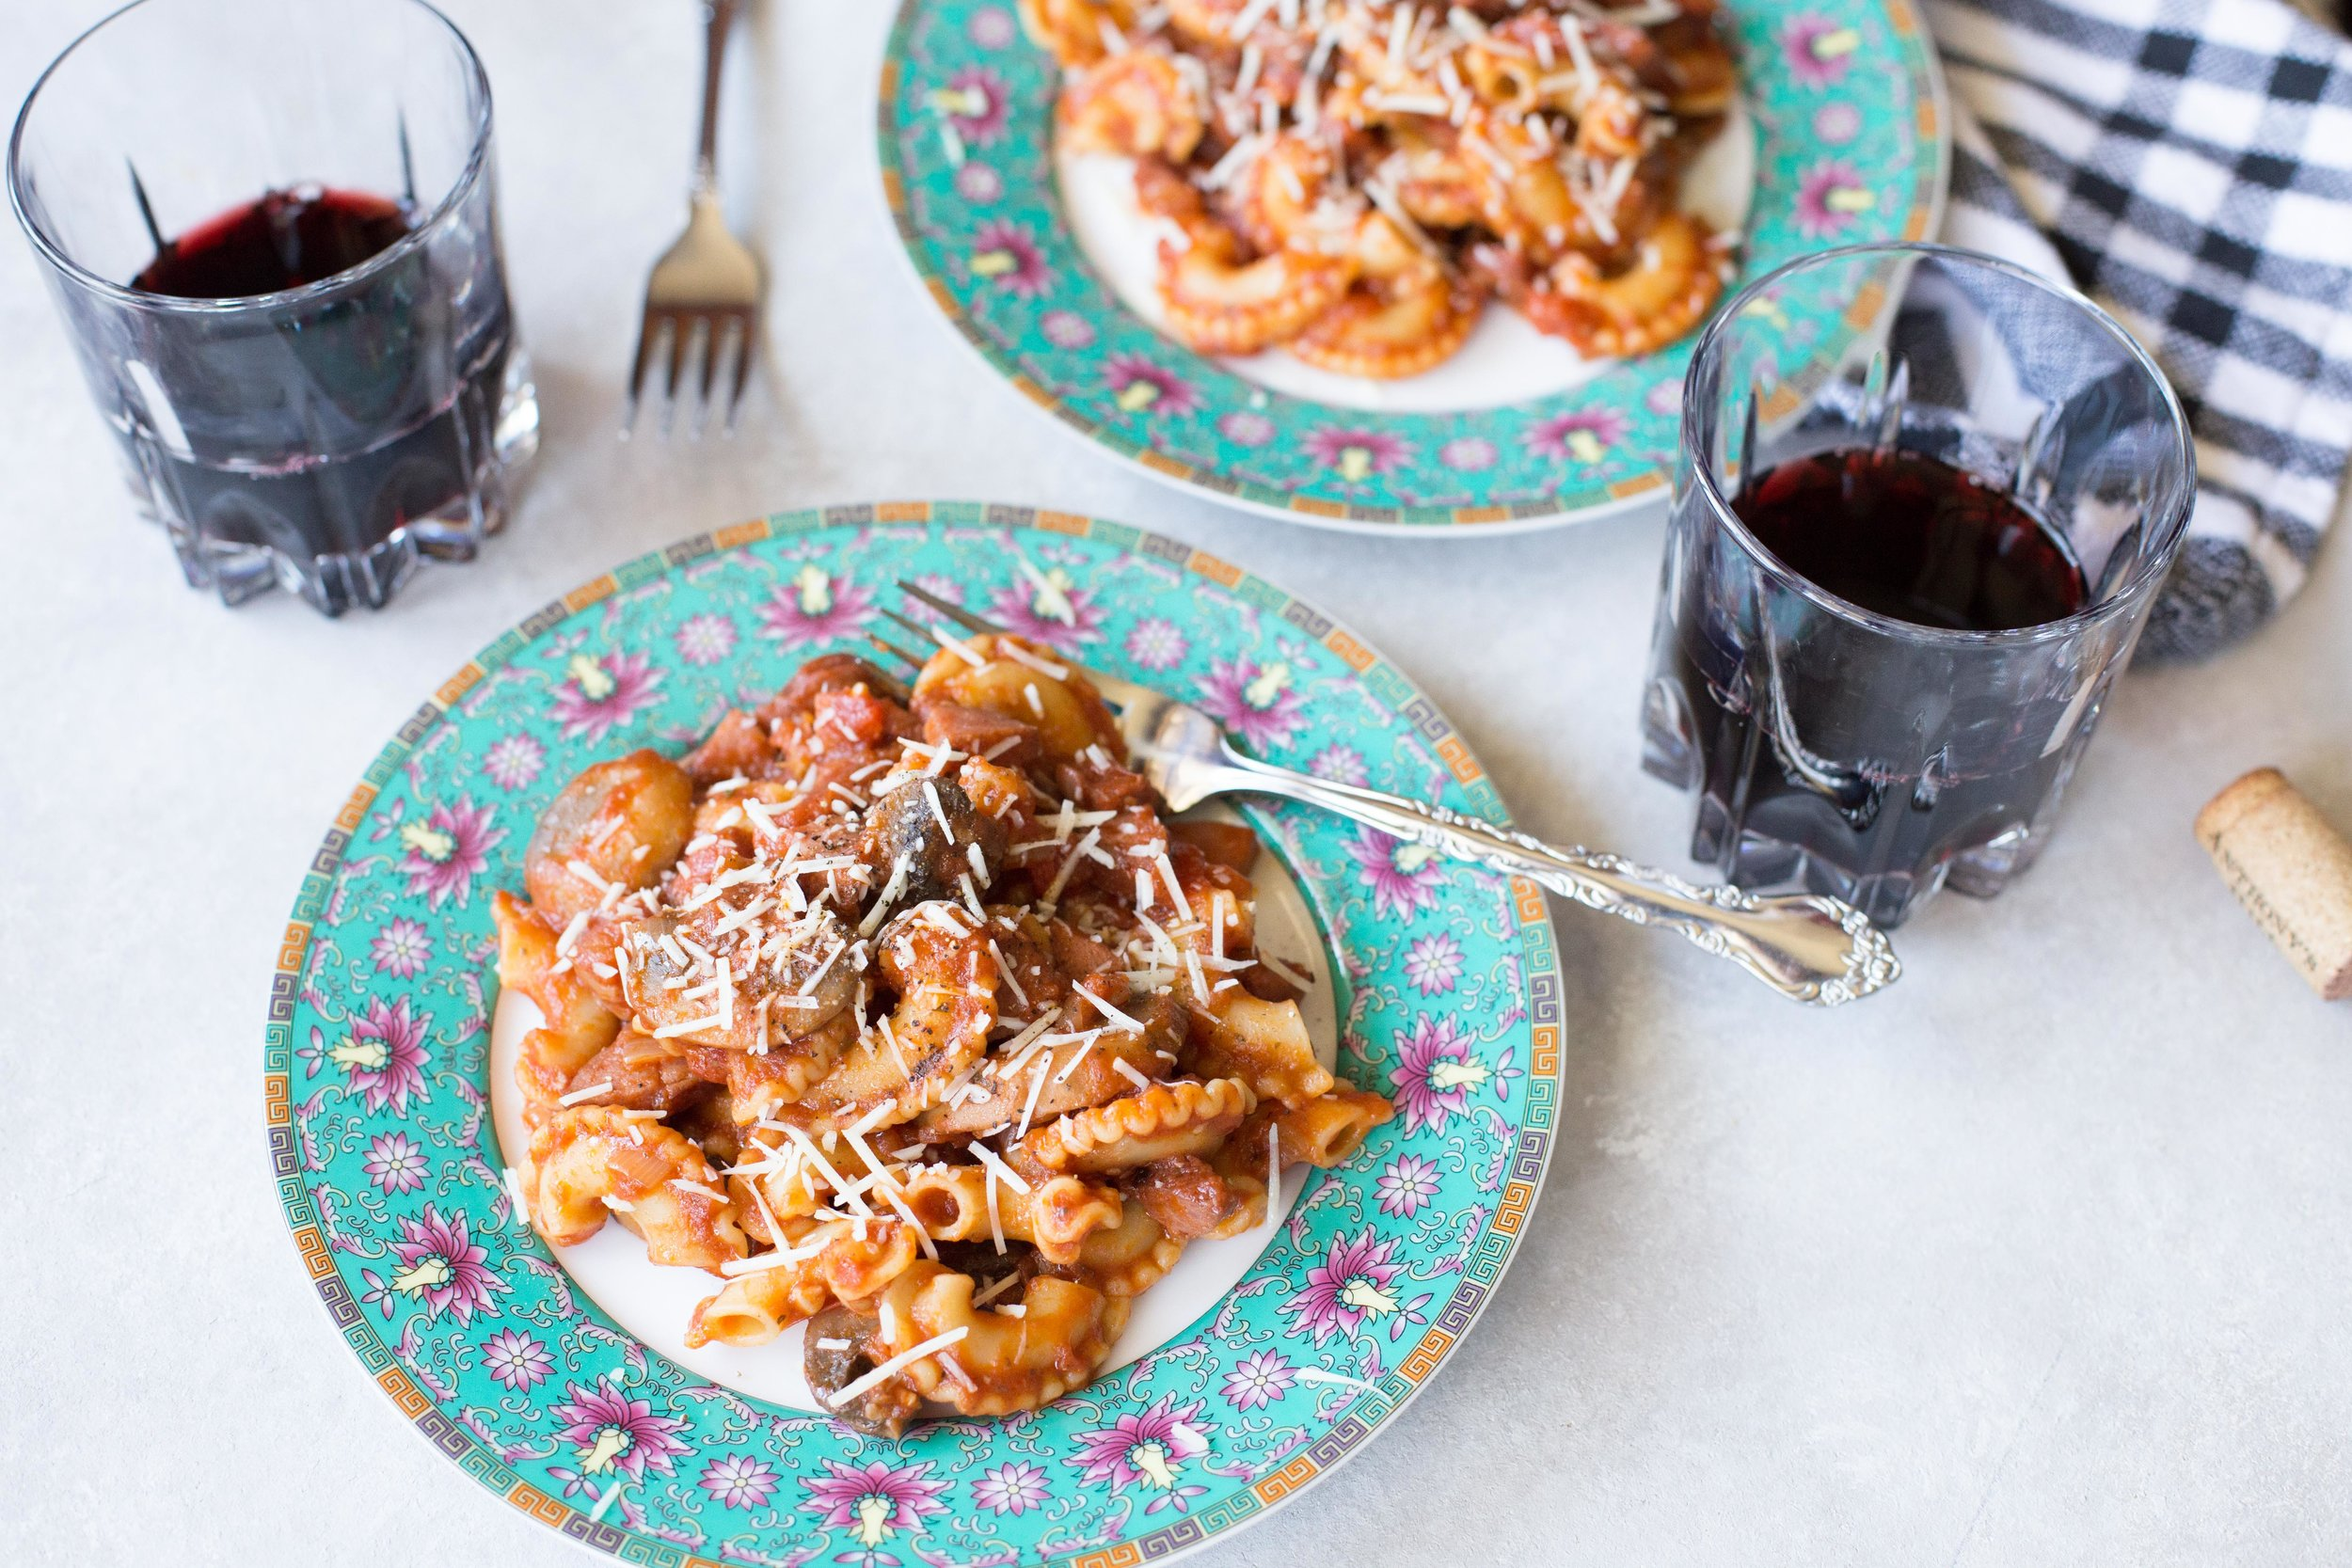 This recipe for kielbasa pasta with mushrooms and homemade marinara sauce is delicious fresh from the pot or as leftovers!